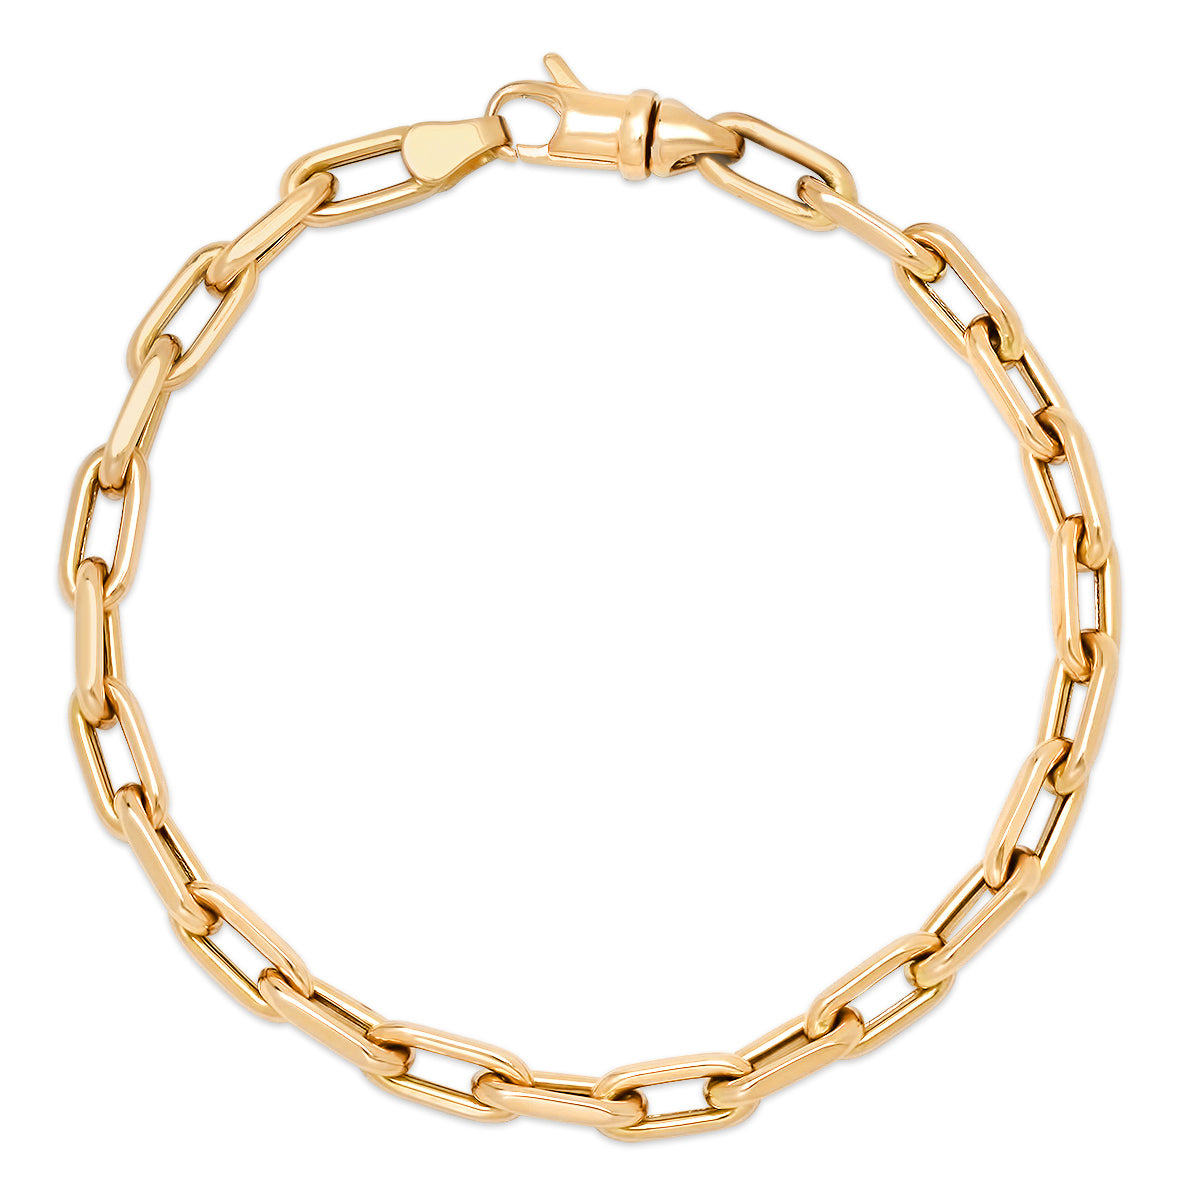 Luxe Link Drawn Gold Cable Chain Bracelet